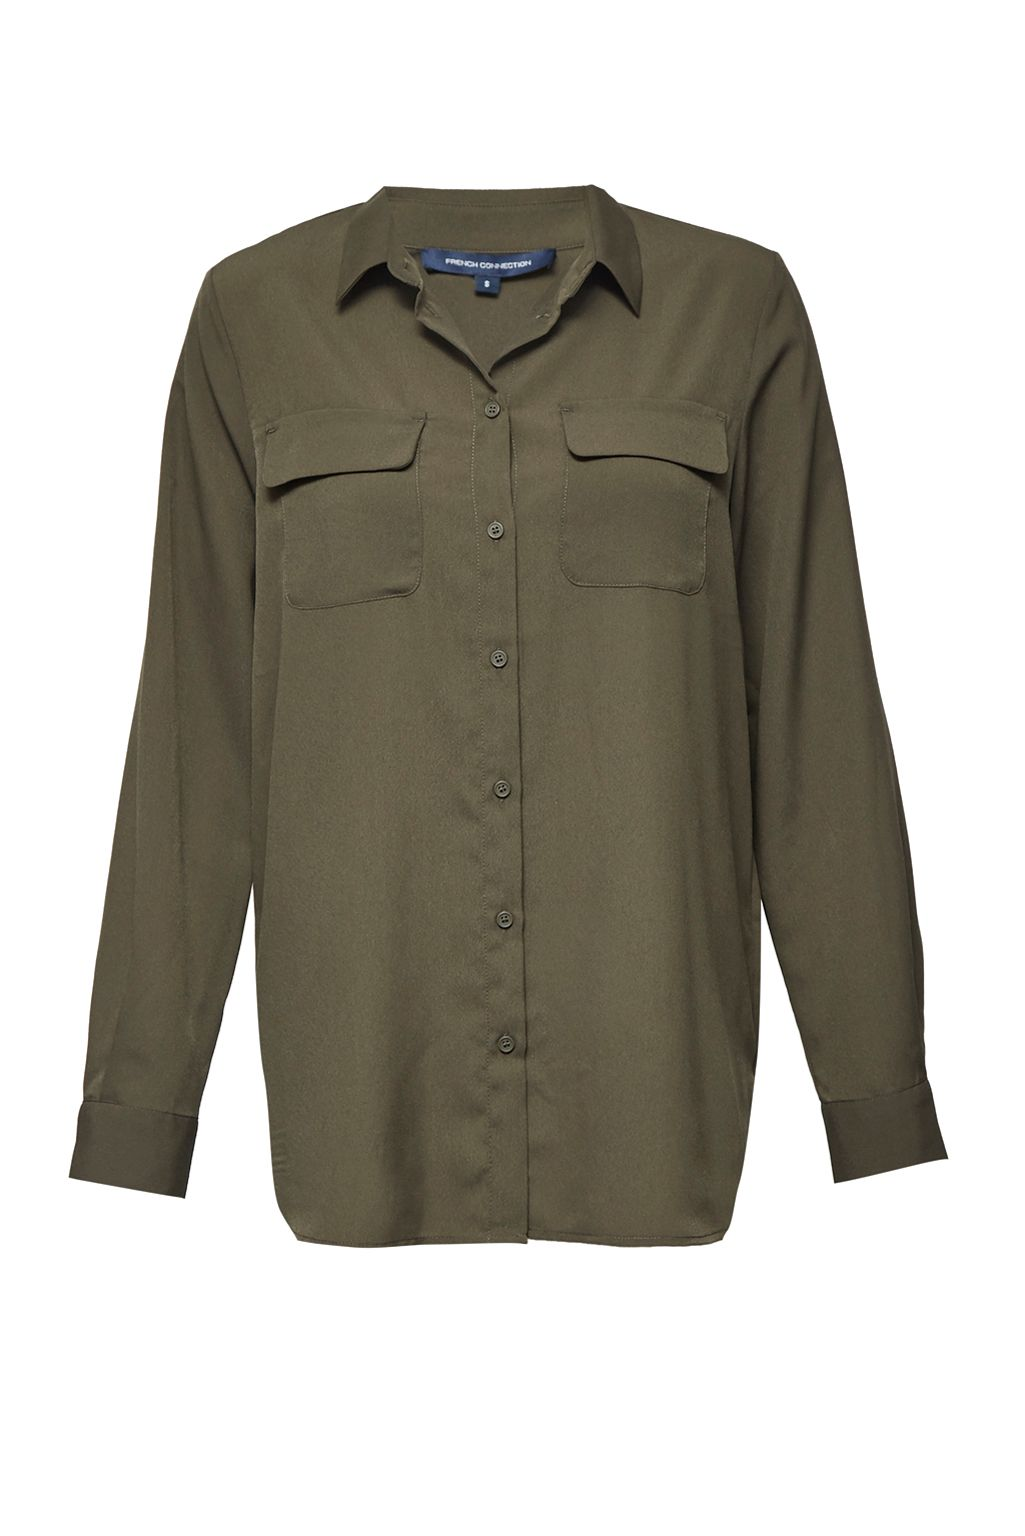 French Connection Classic Crepe Light Woven Shirt, Olive